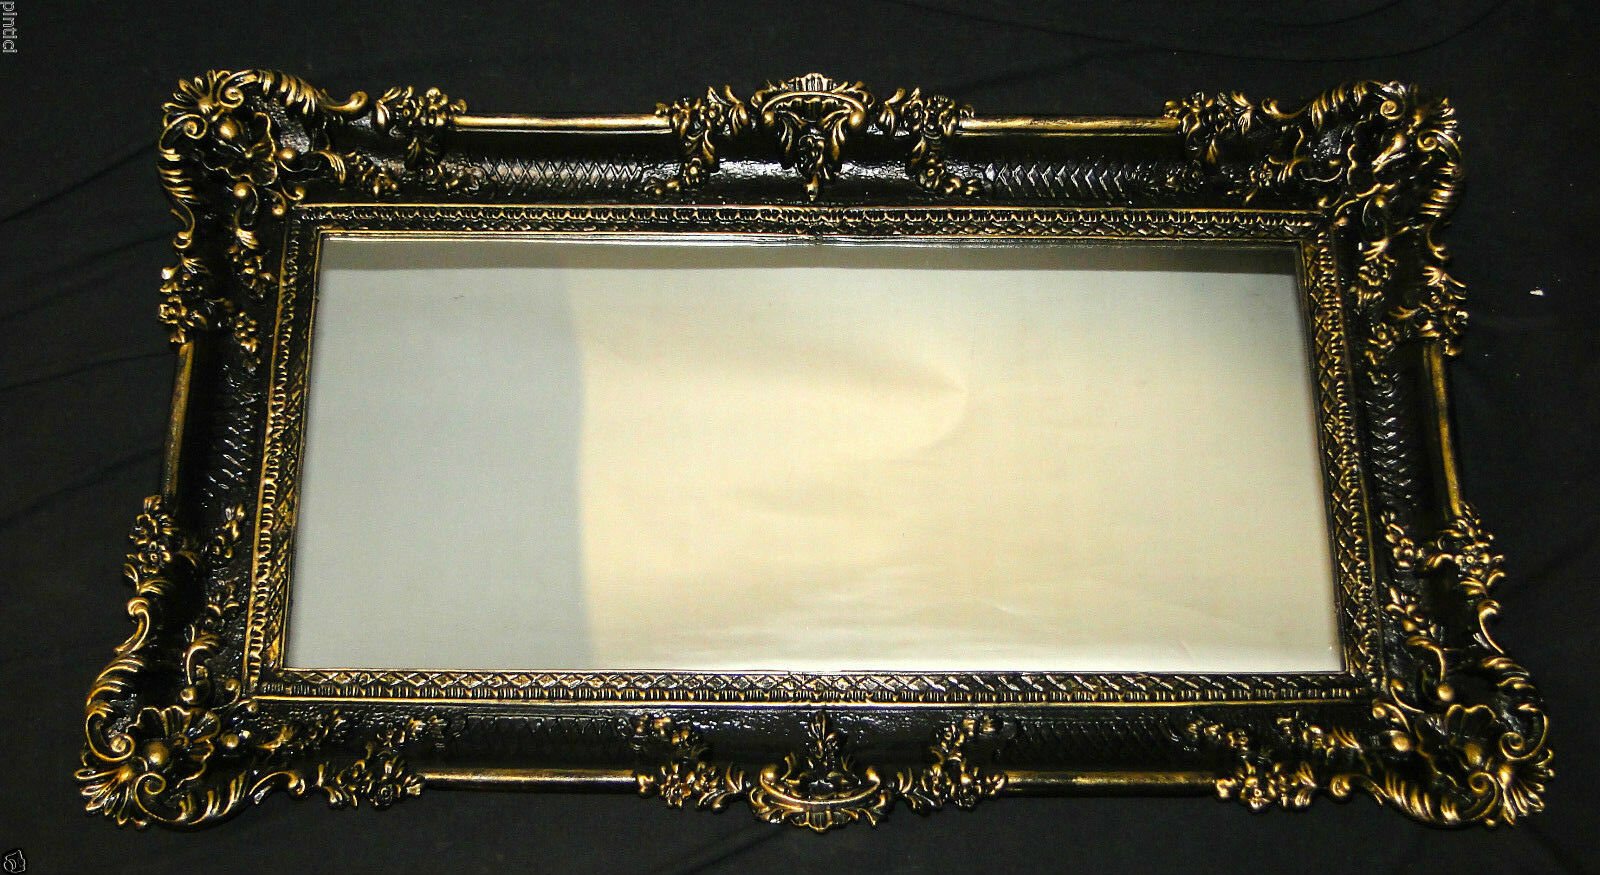 baroque wall mirror black gold mirror wall deco deco 97x57 antique big ebay. Black Bedroom Furniture Sets. Home Design Ideas